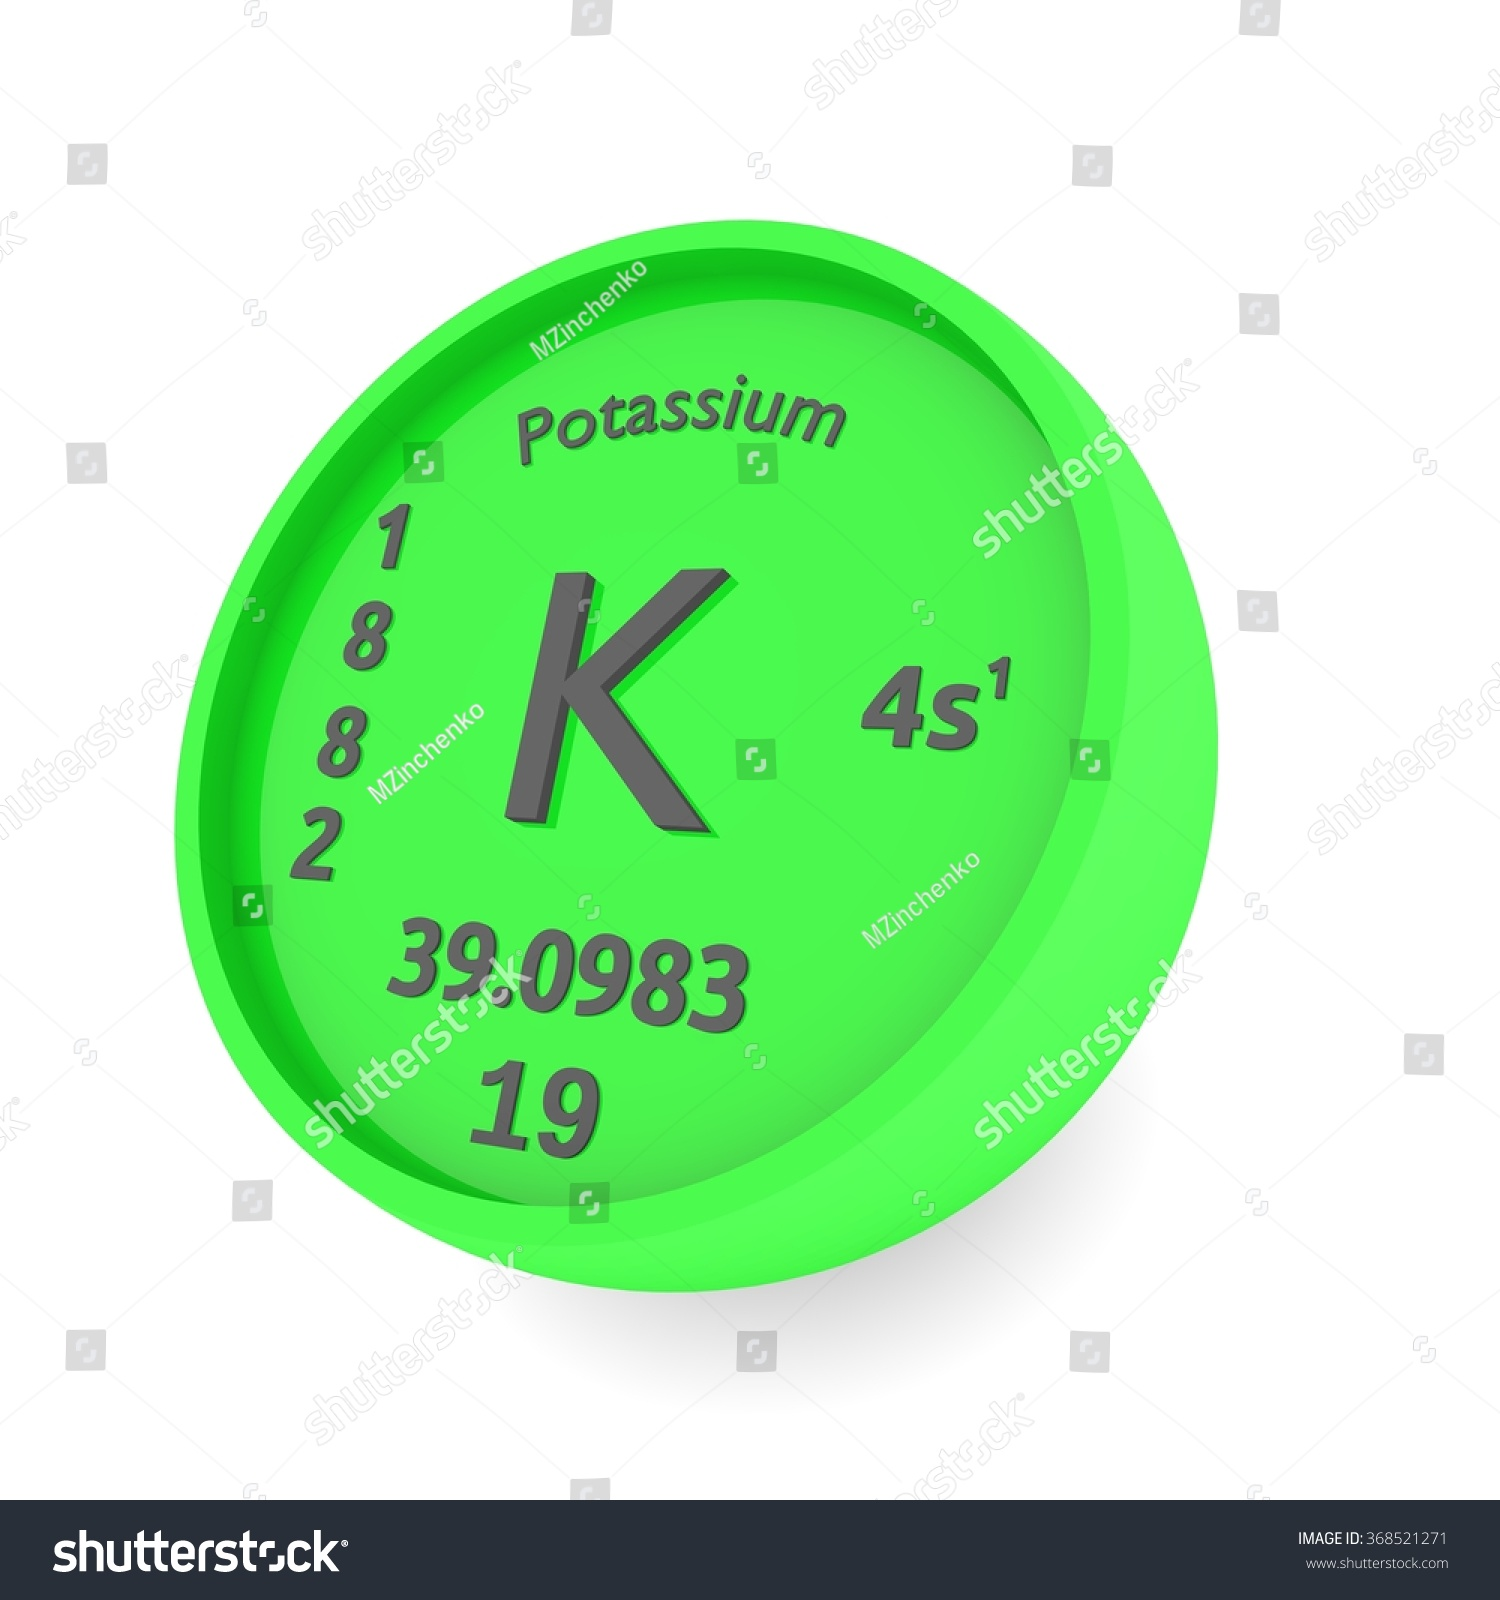 Potassium chemical element sign periodic table stock illustration potassium chemical element sign in periodic table gamestrikefo Gallery